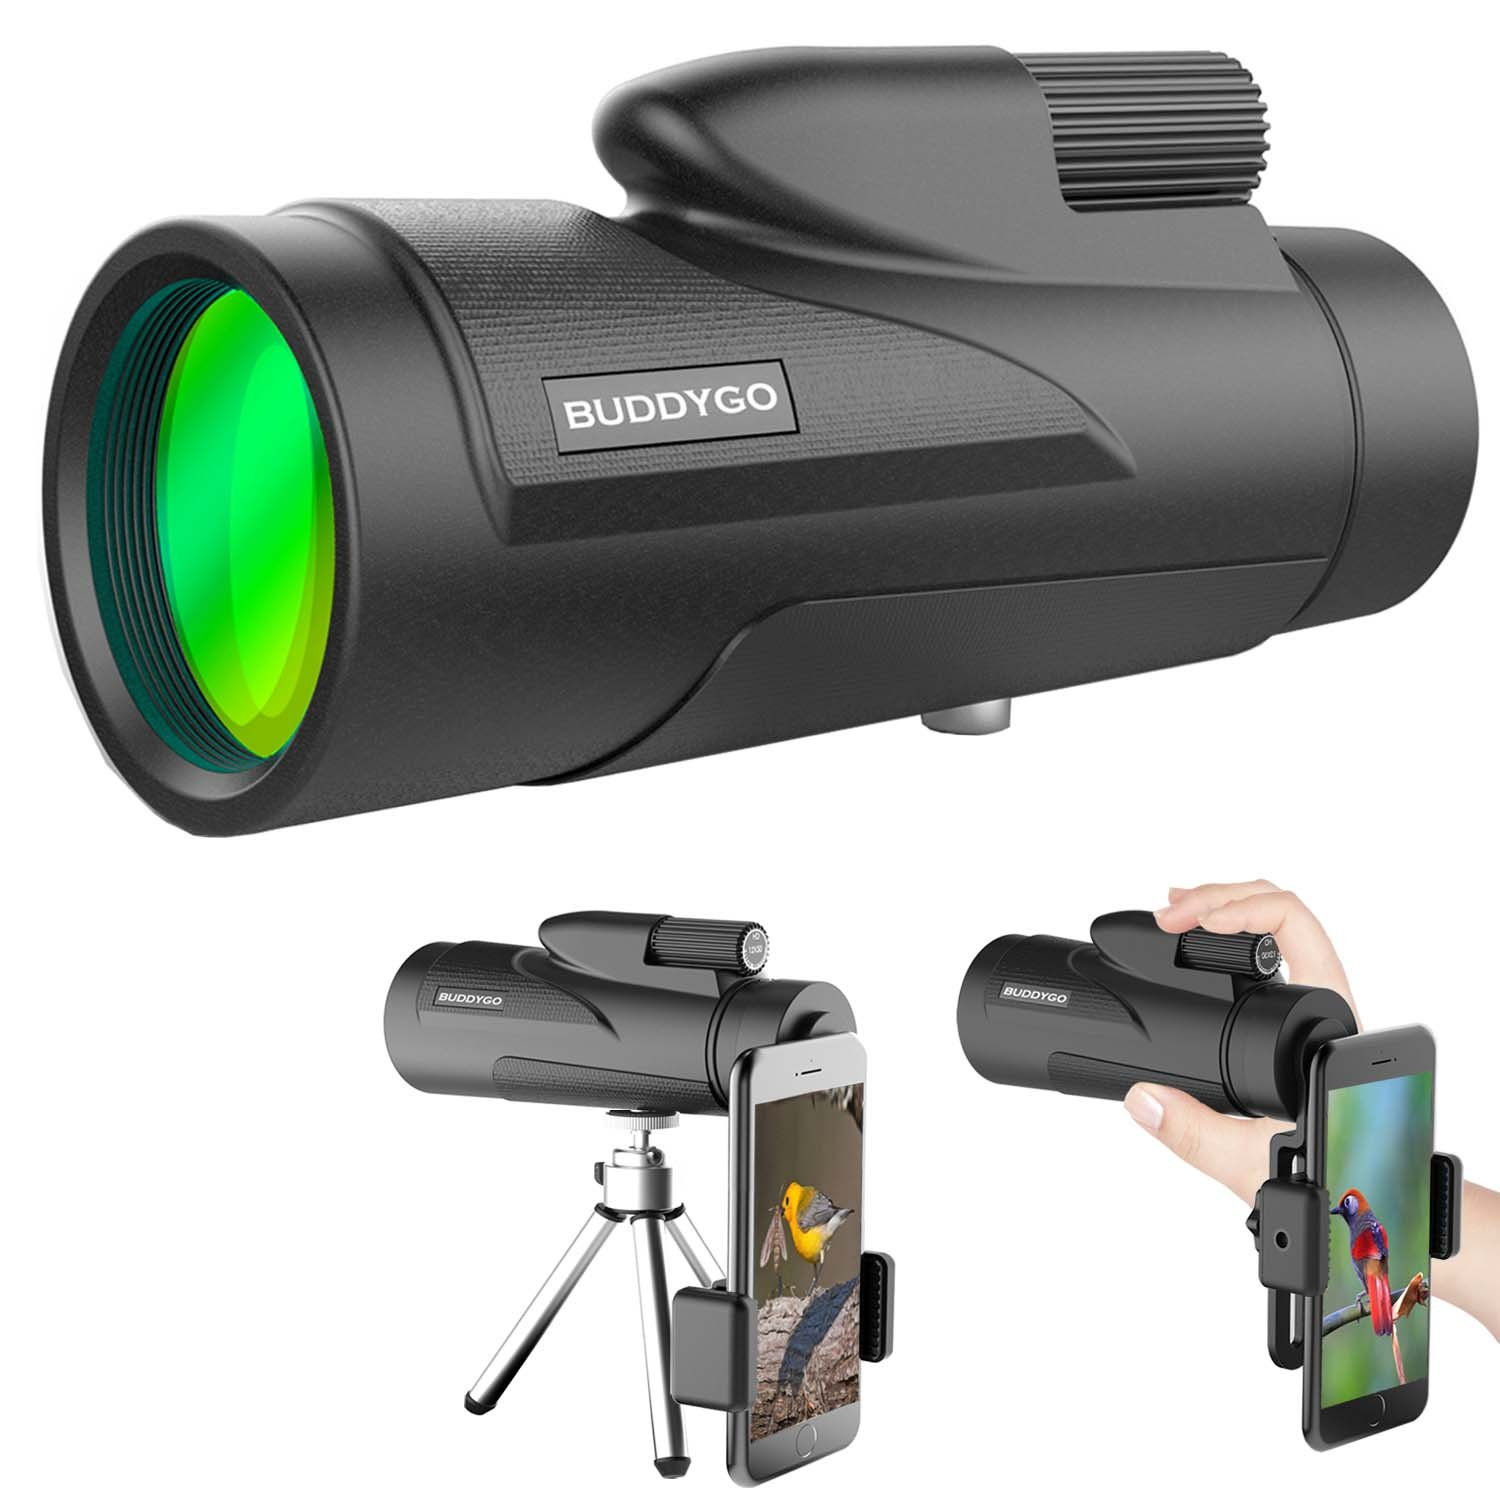 Monocular Telescope, BUDDYGO 12x50 High Power Low Night Vision Waterproof Spotting Scope for Adults with Smartphone Adapter and Tripod Waterproof Fogproof Shockproof for Bird Watching Hunting (12x50) by BUDDYGO